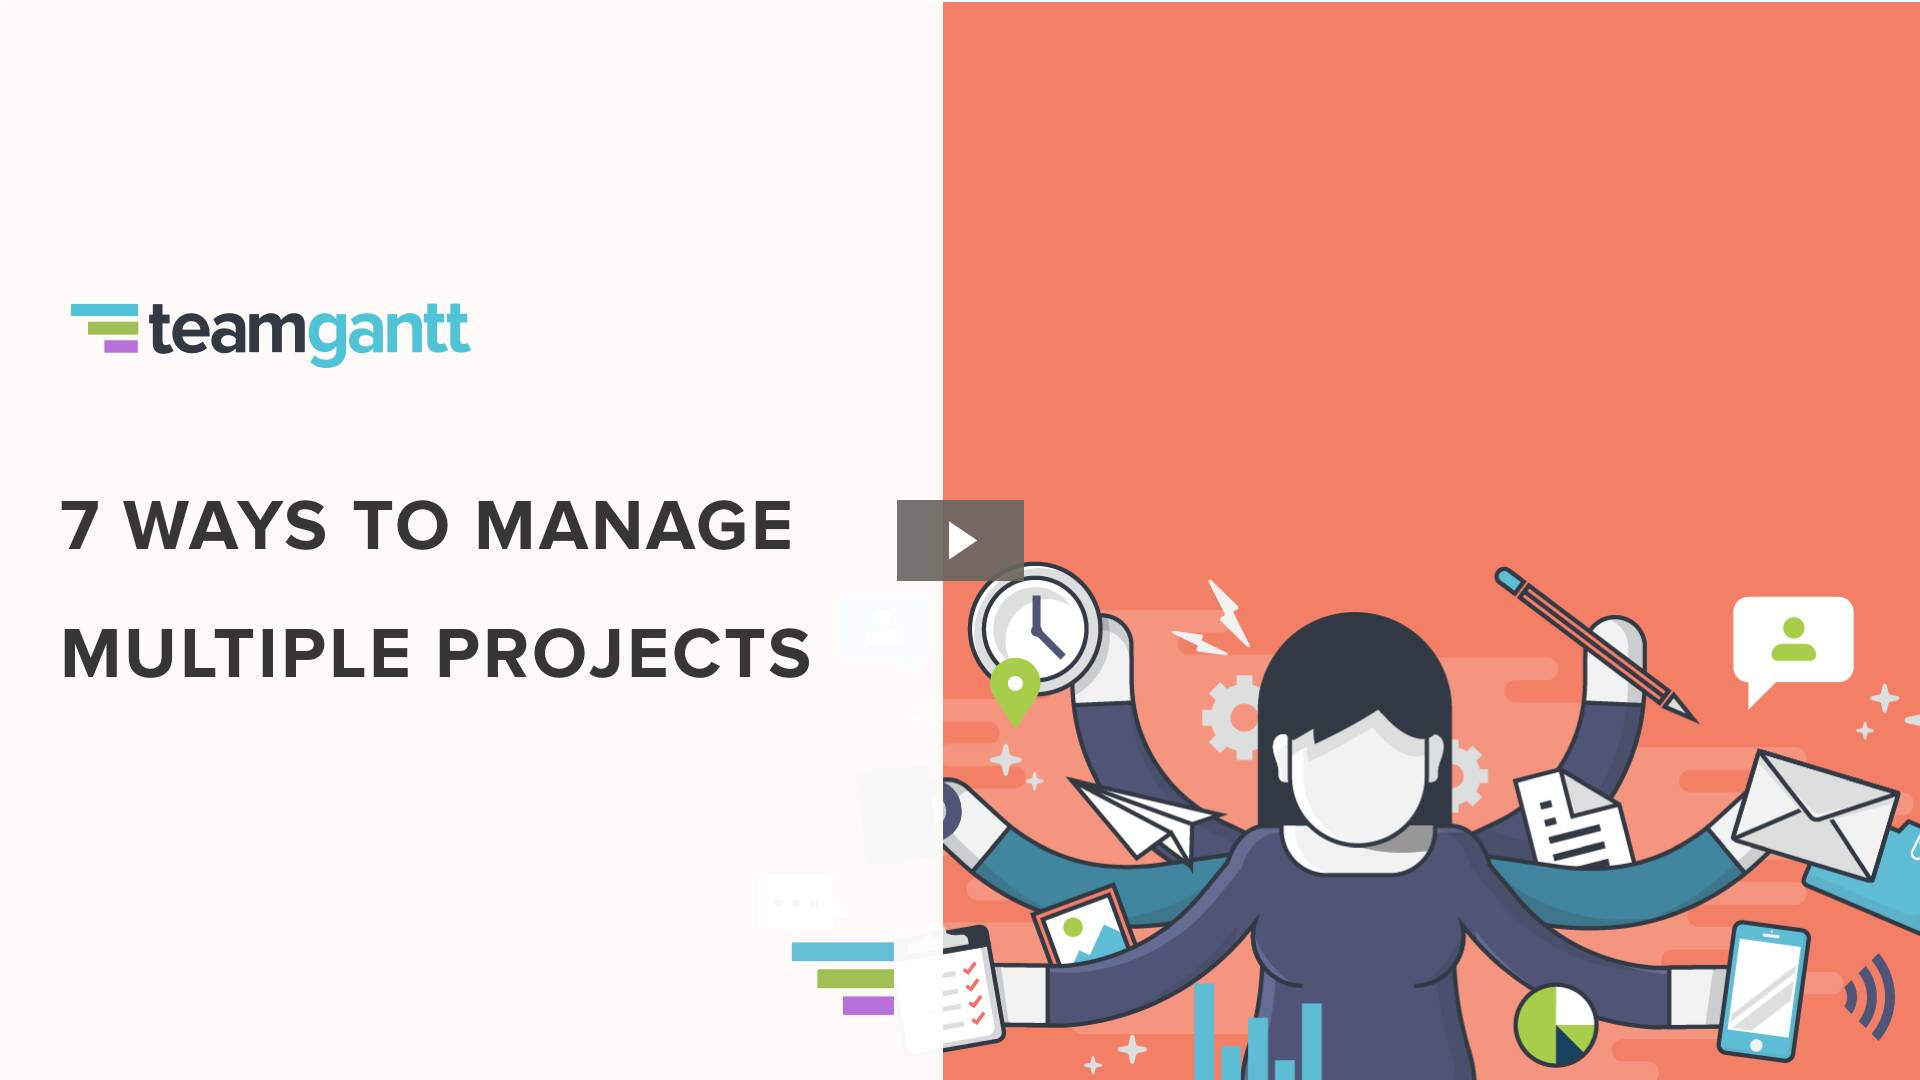 7 Ways to Manage Multiple Projects (and keep clients happy)